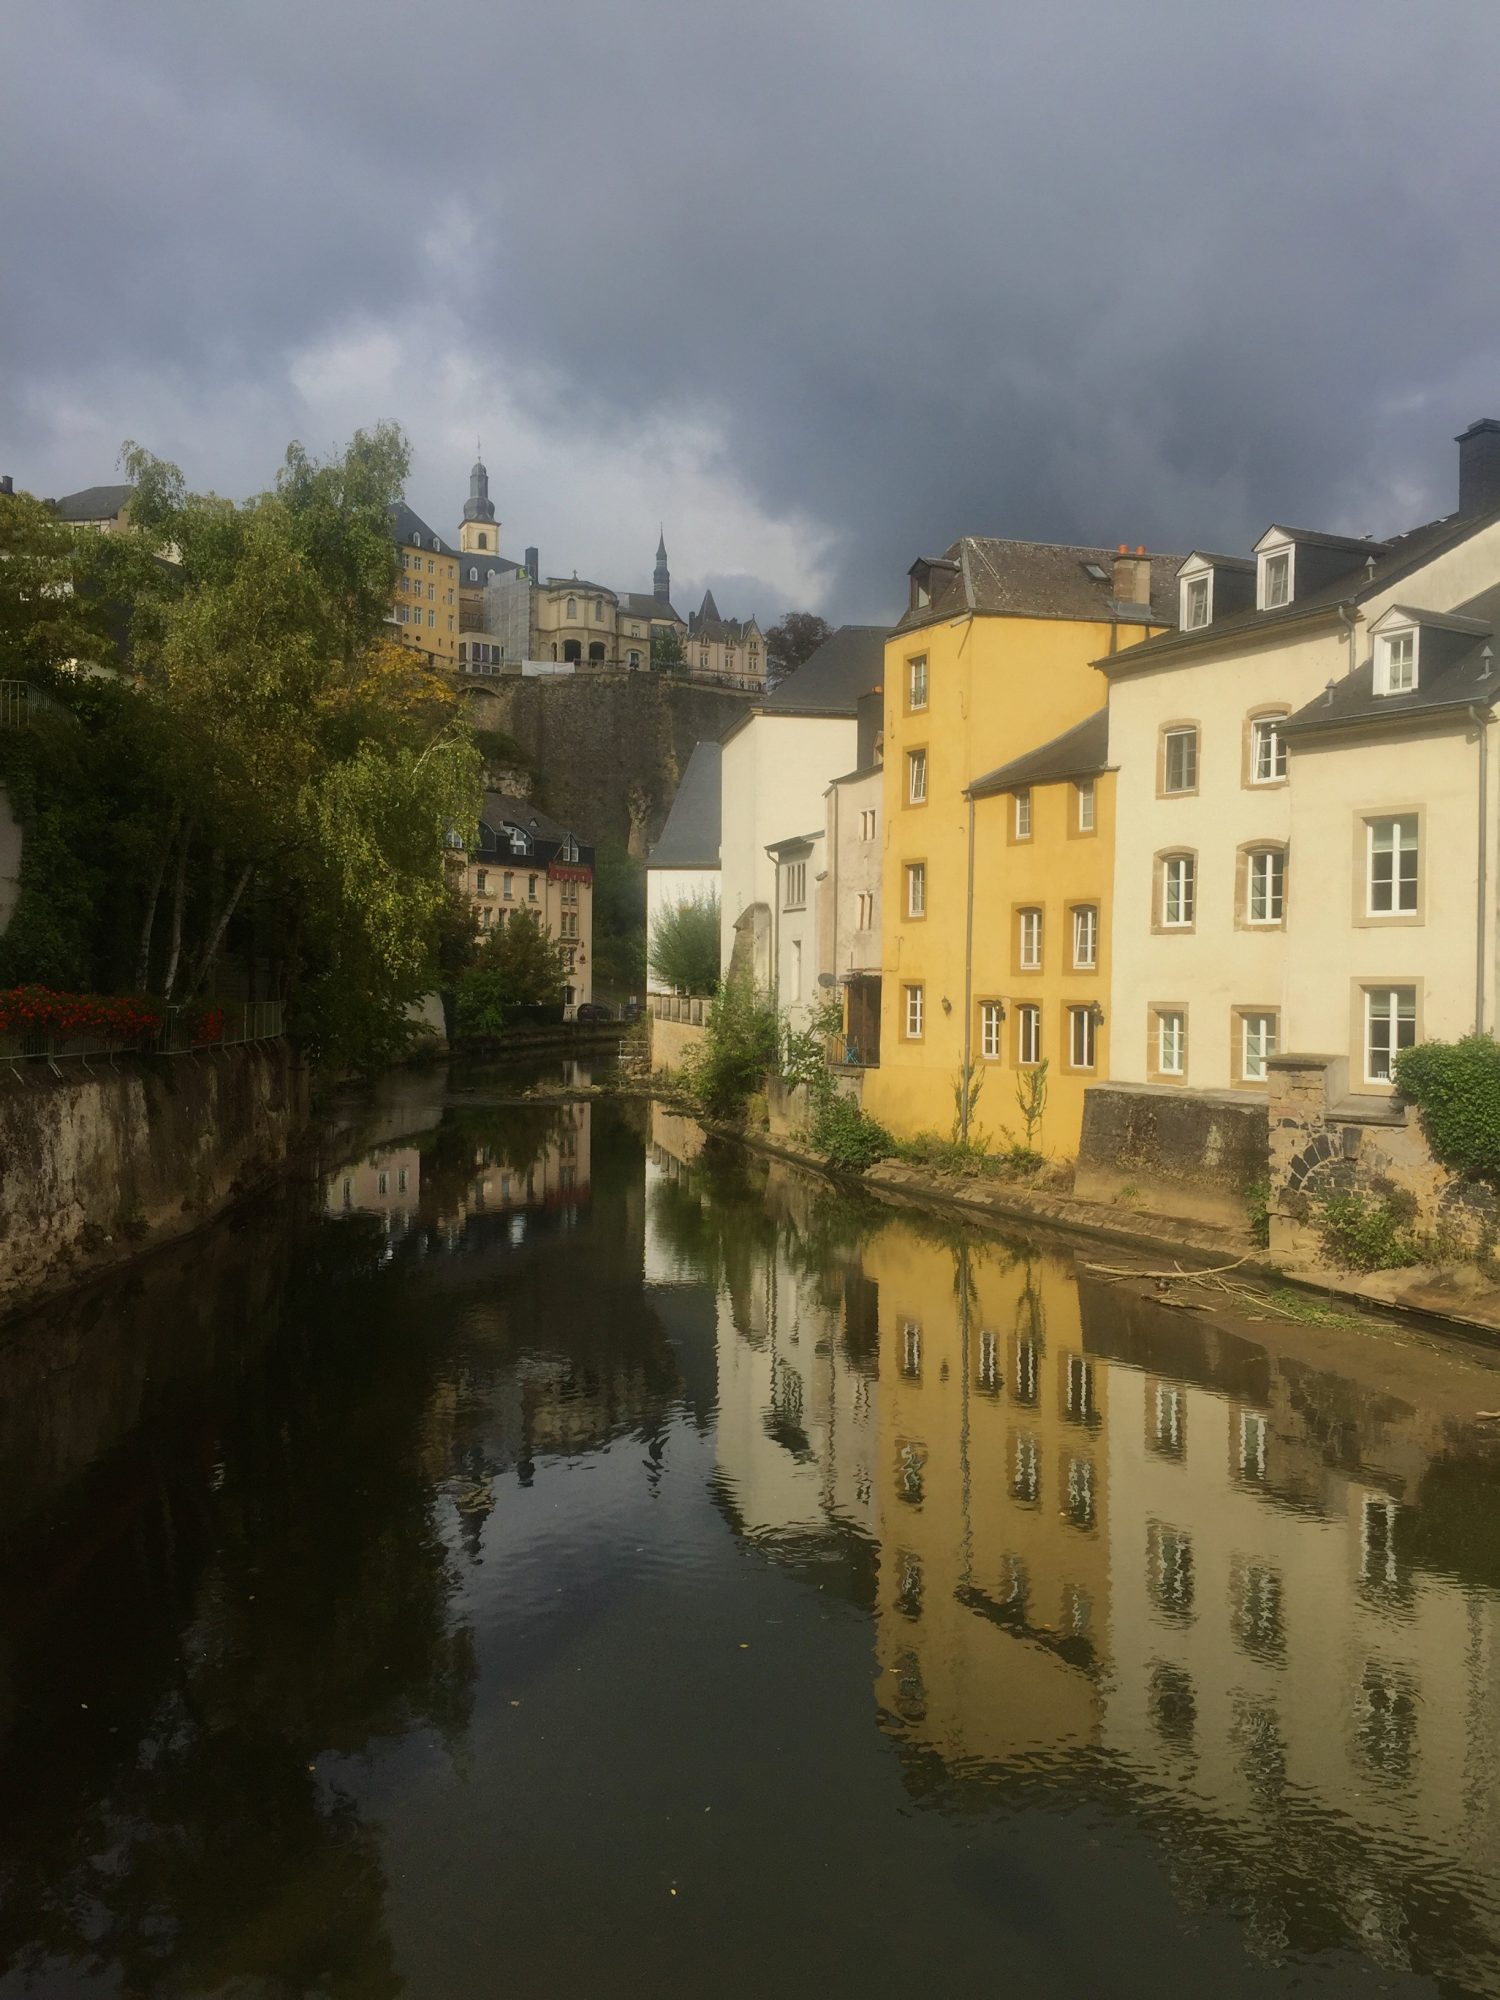 A cloudy day in Luxembourg.